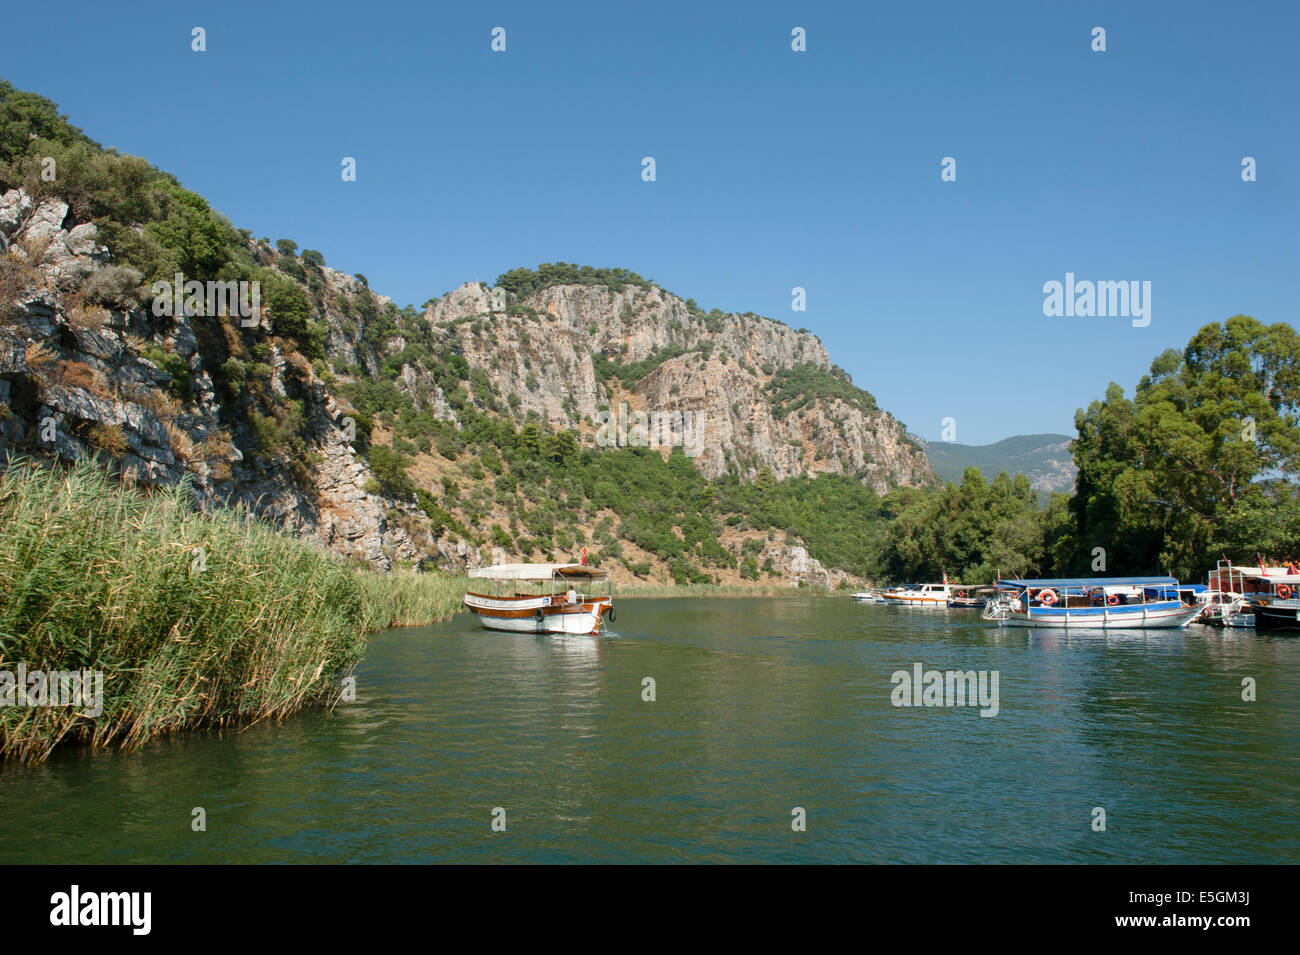 Boating is a popular pastime on the Dalyan river in Mugla province, Turkey - Stock Image